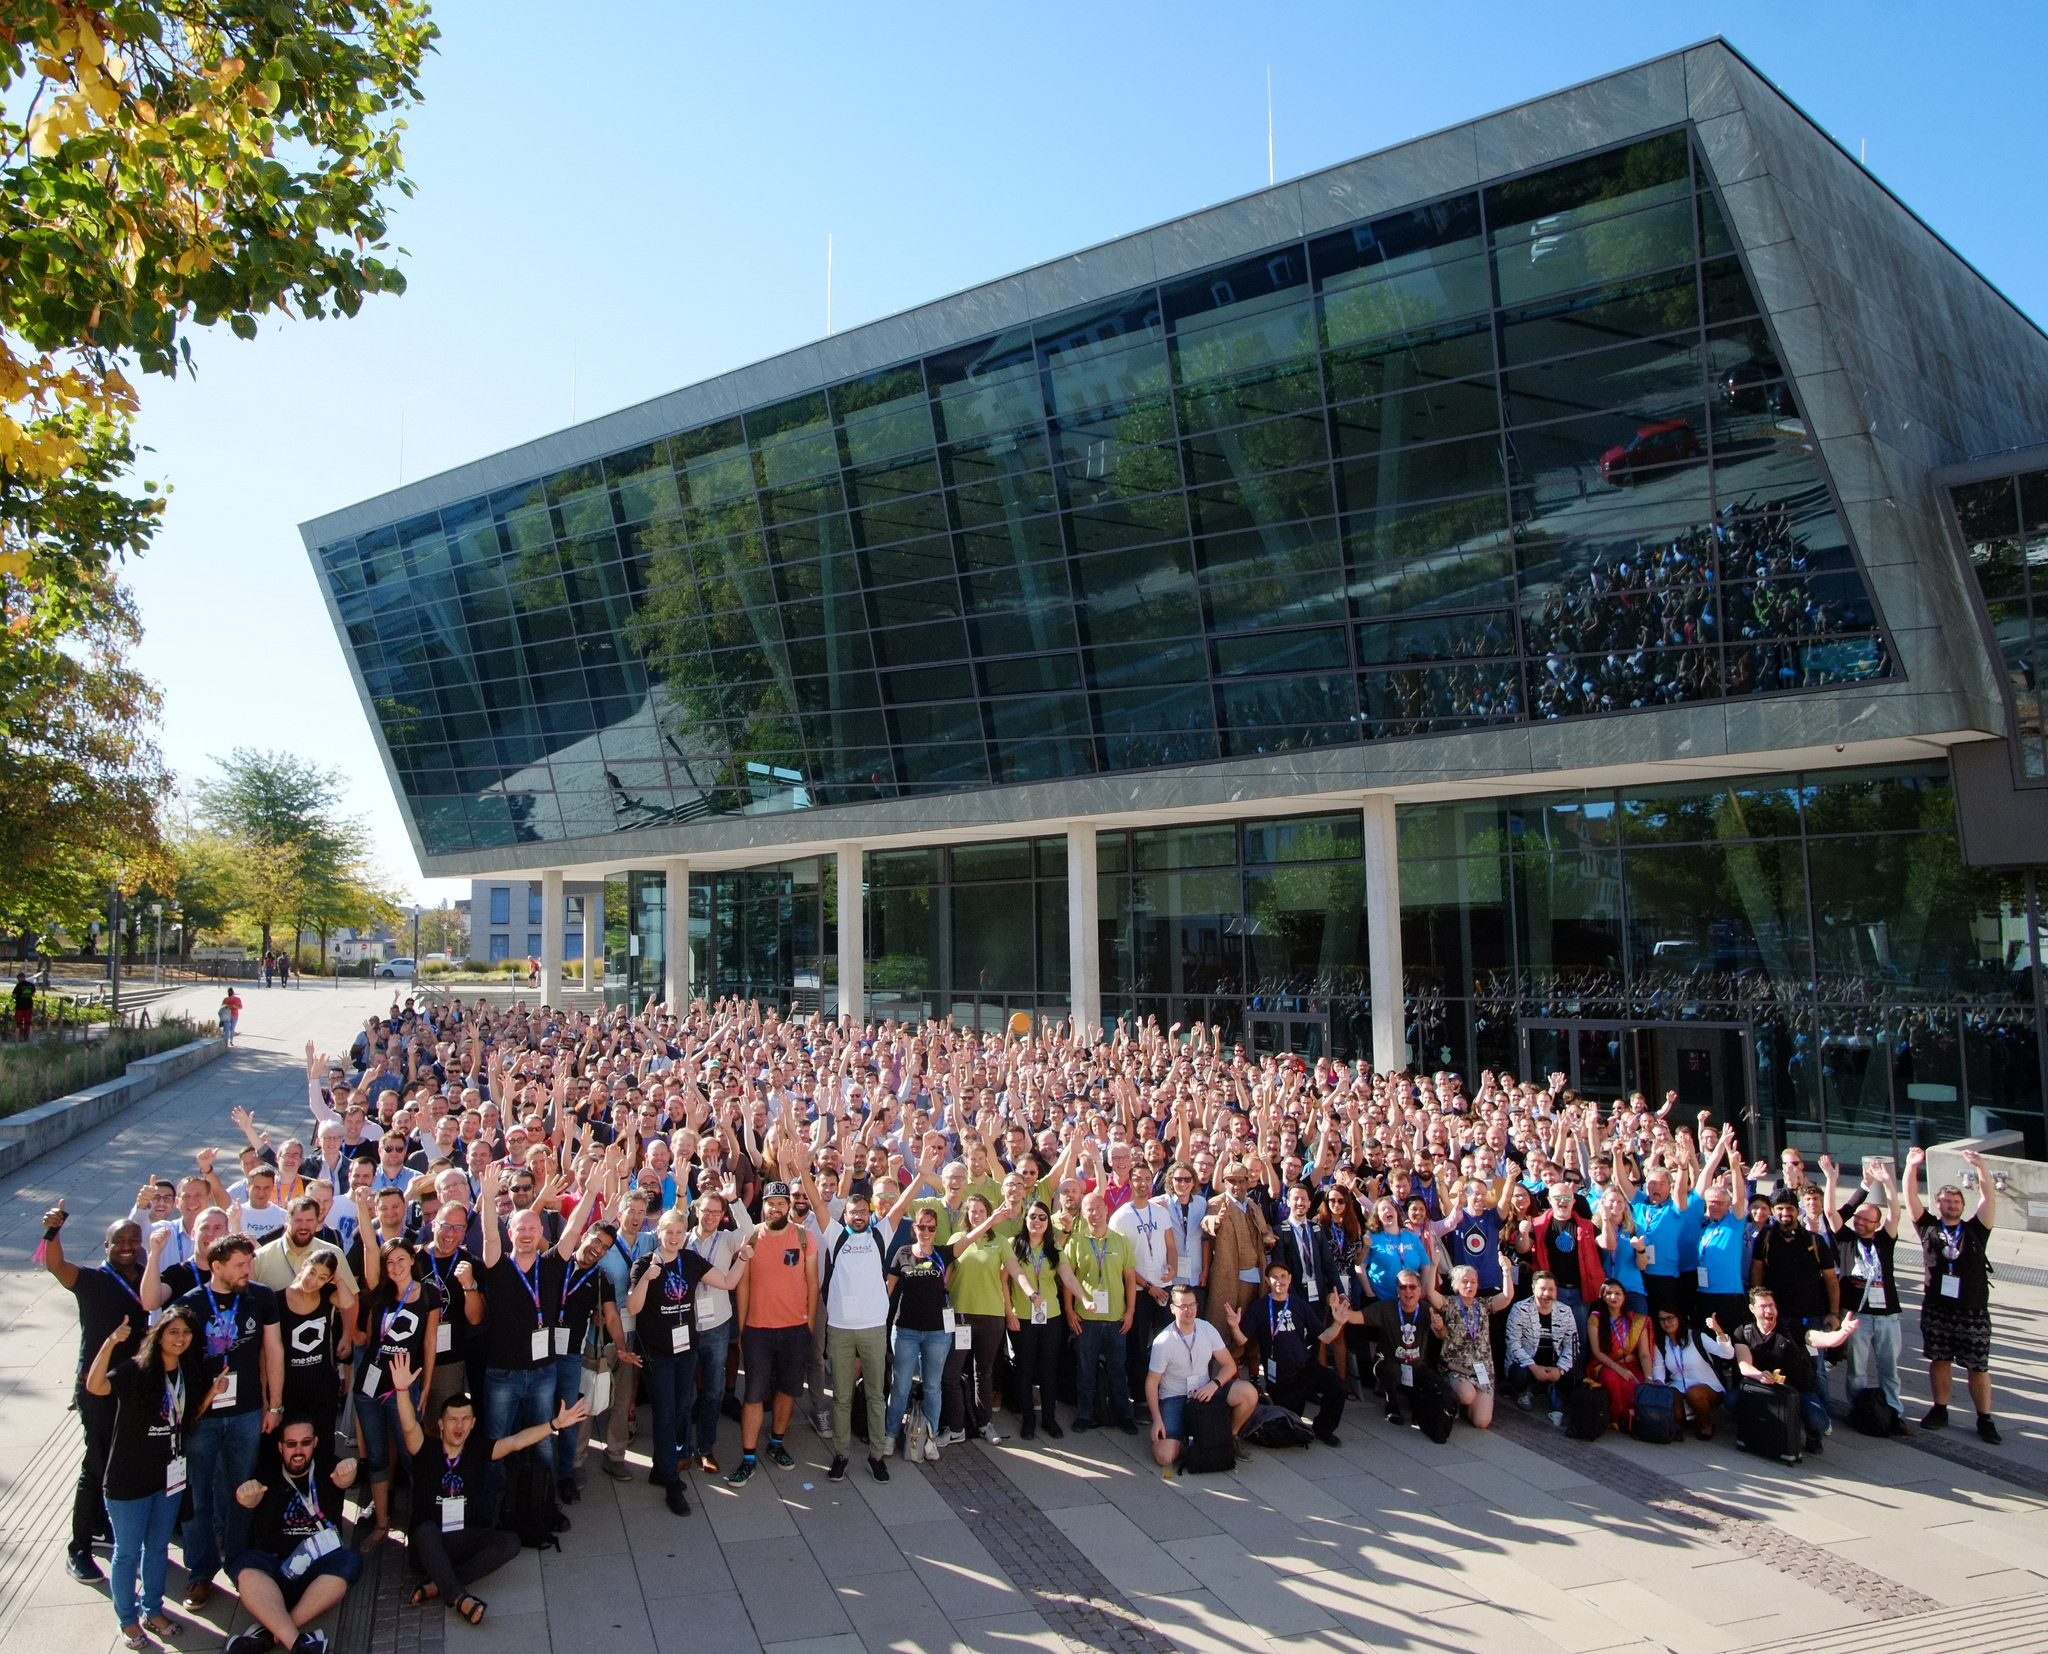 Official Group Photo Drupal Europe Darmstadt 2018 https://www.flickr.com/photos/amazeelabs/43723875575/ (CC BY-NC-SA 2.0)